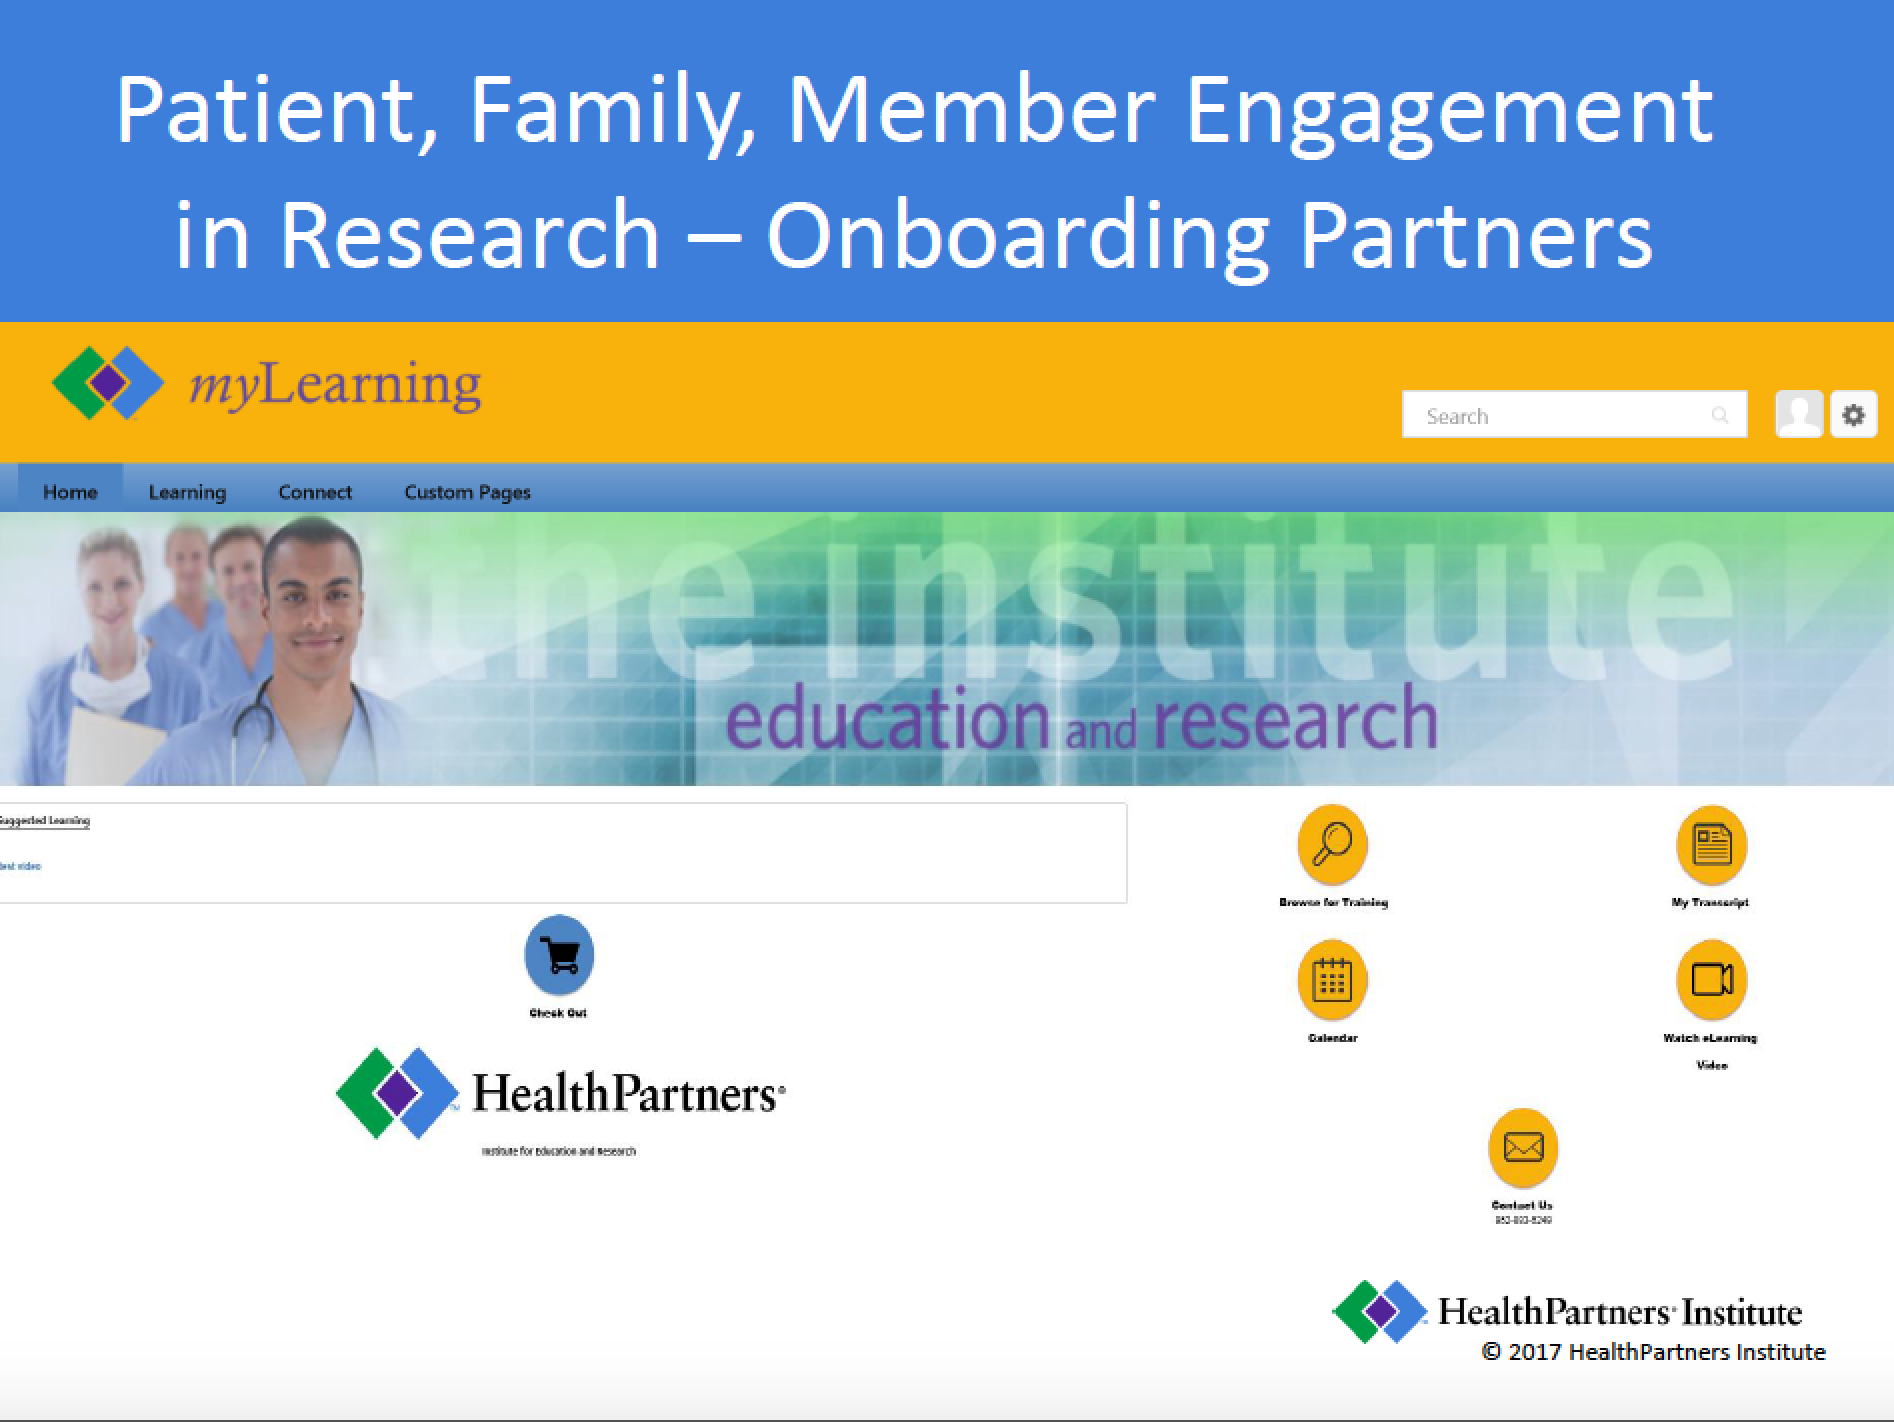 Patient, Family, Member Engagement in Research - Onboarding Partners